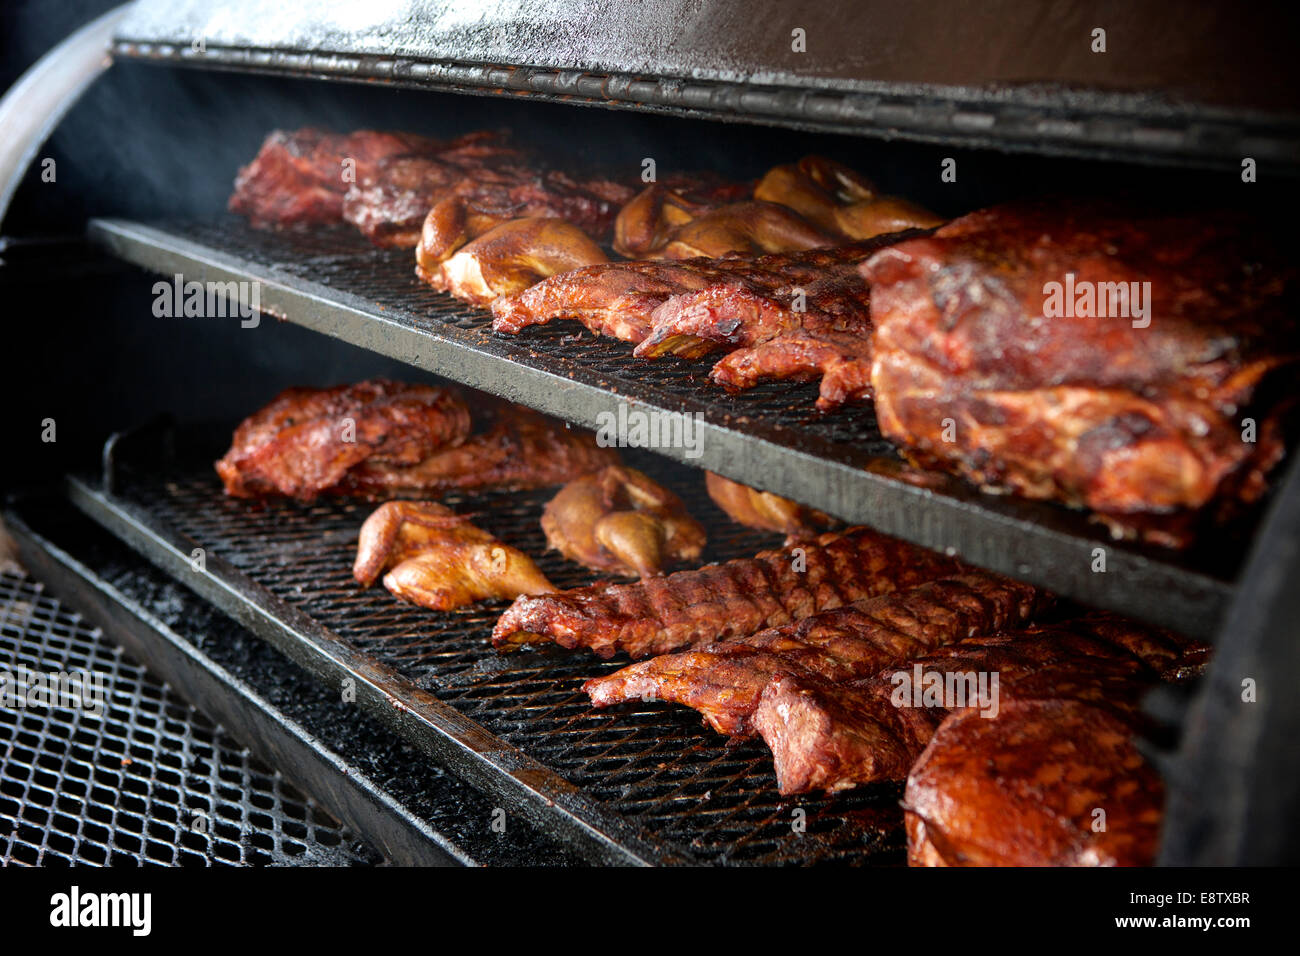 Chicken, Beef Brisket, and Pork Ribs in the smoker. - Stock Image